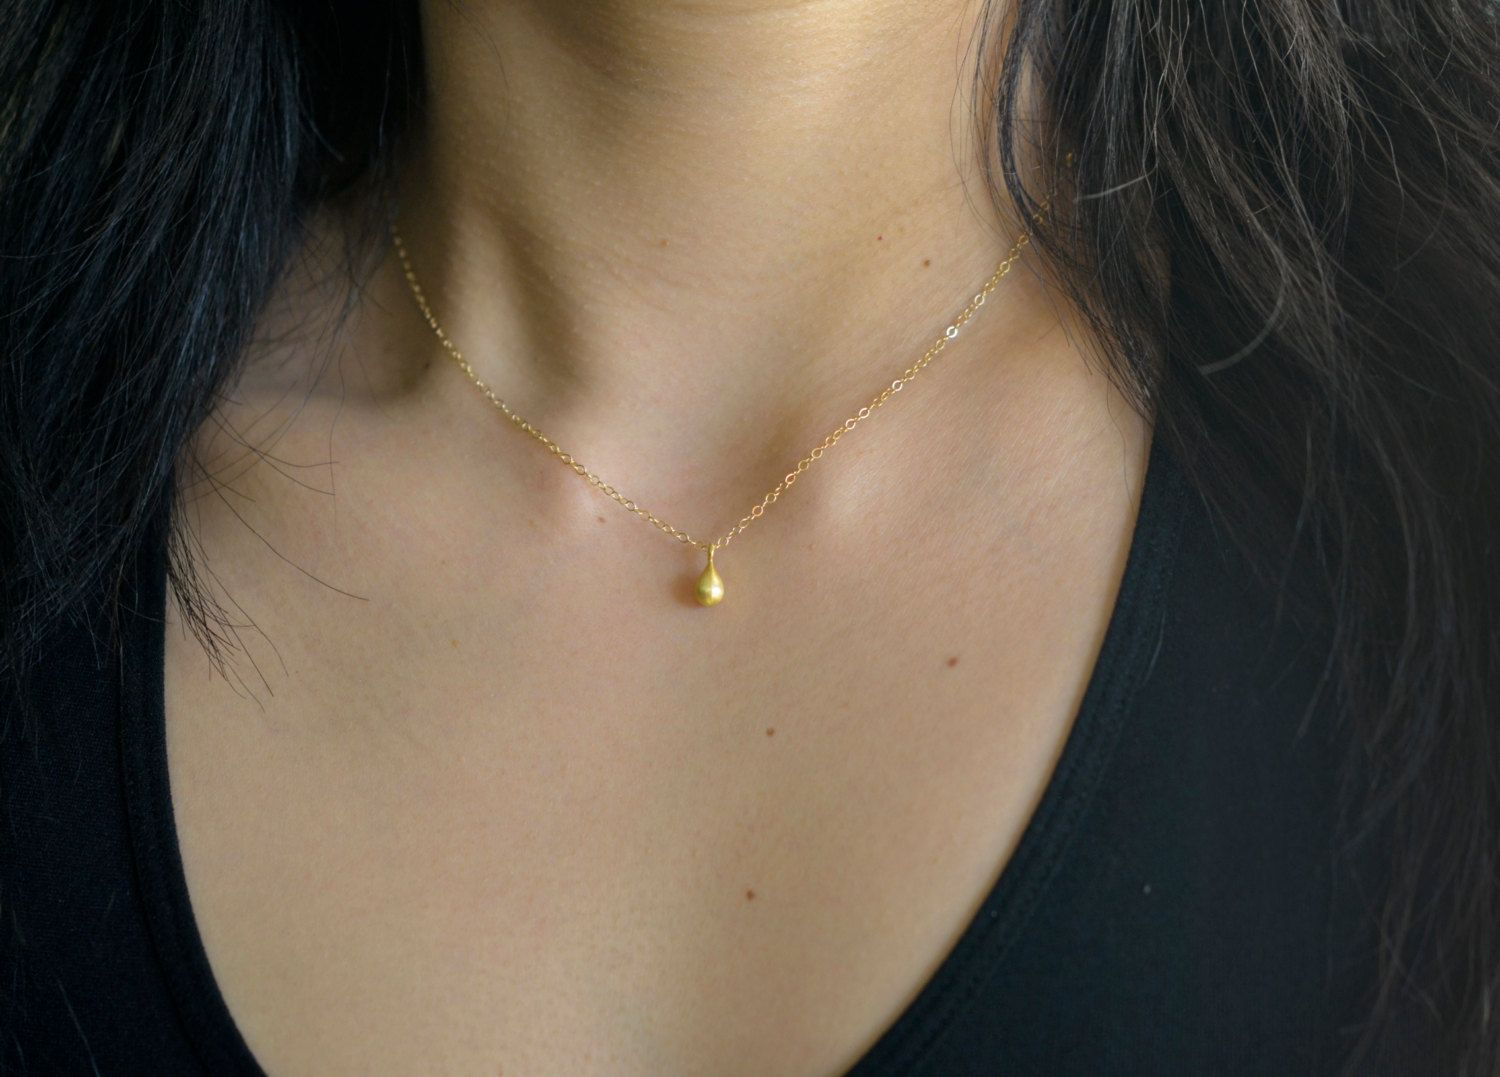 Little gold droplet necklace raindrop necklace gold drop necklace little gold droplet necklace raindrop necklace gold drop necklace minimalist teardrop charm necklace aloadofball Gallery